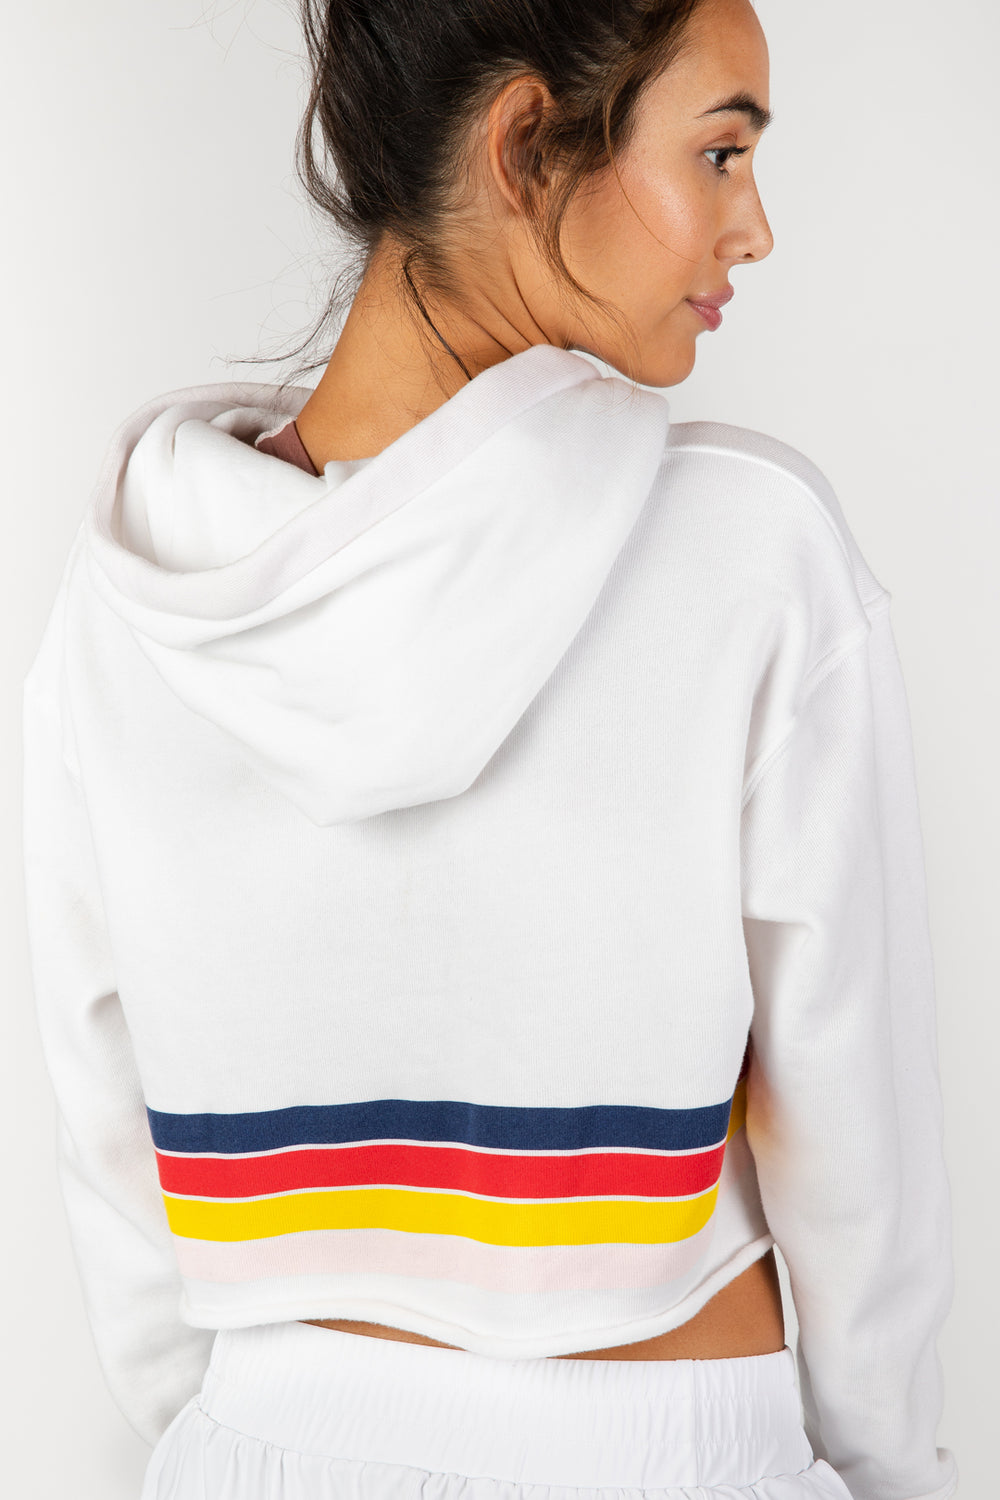 Groove with Me White Sweatshirt